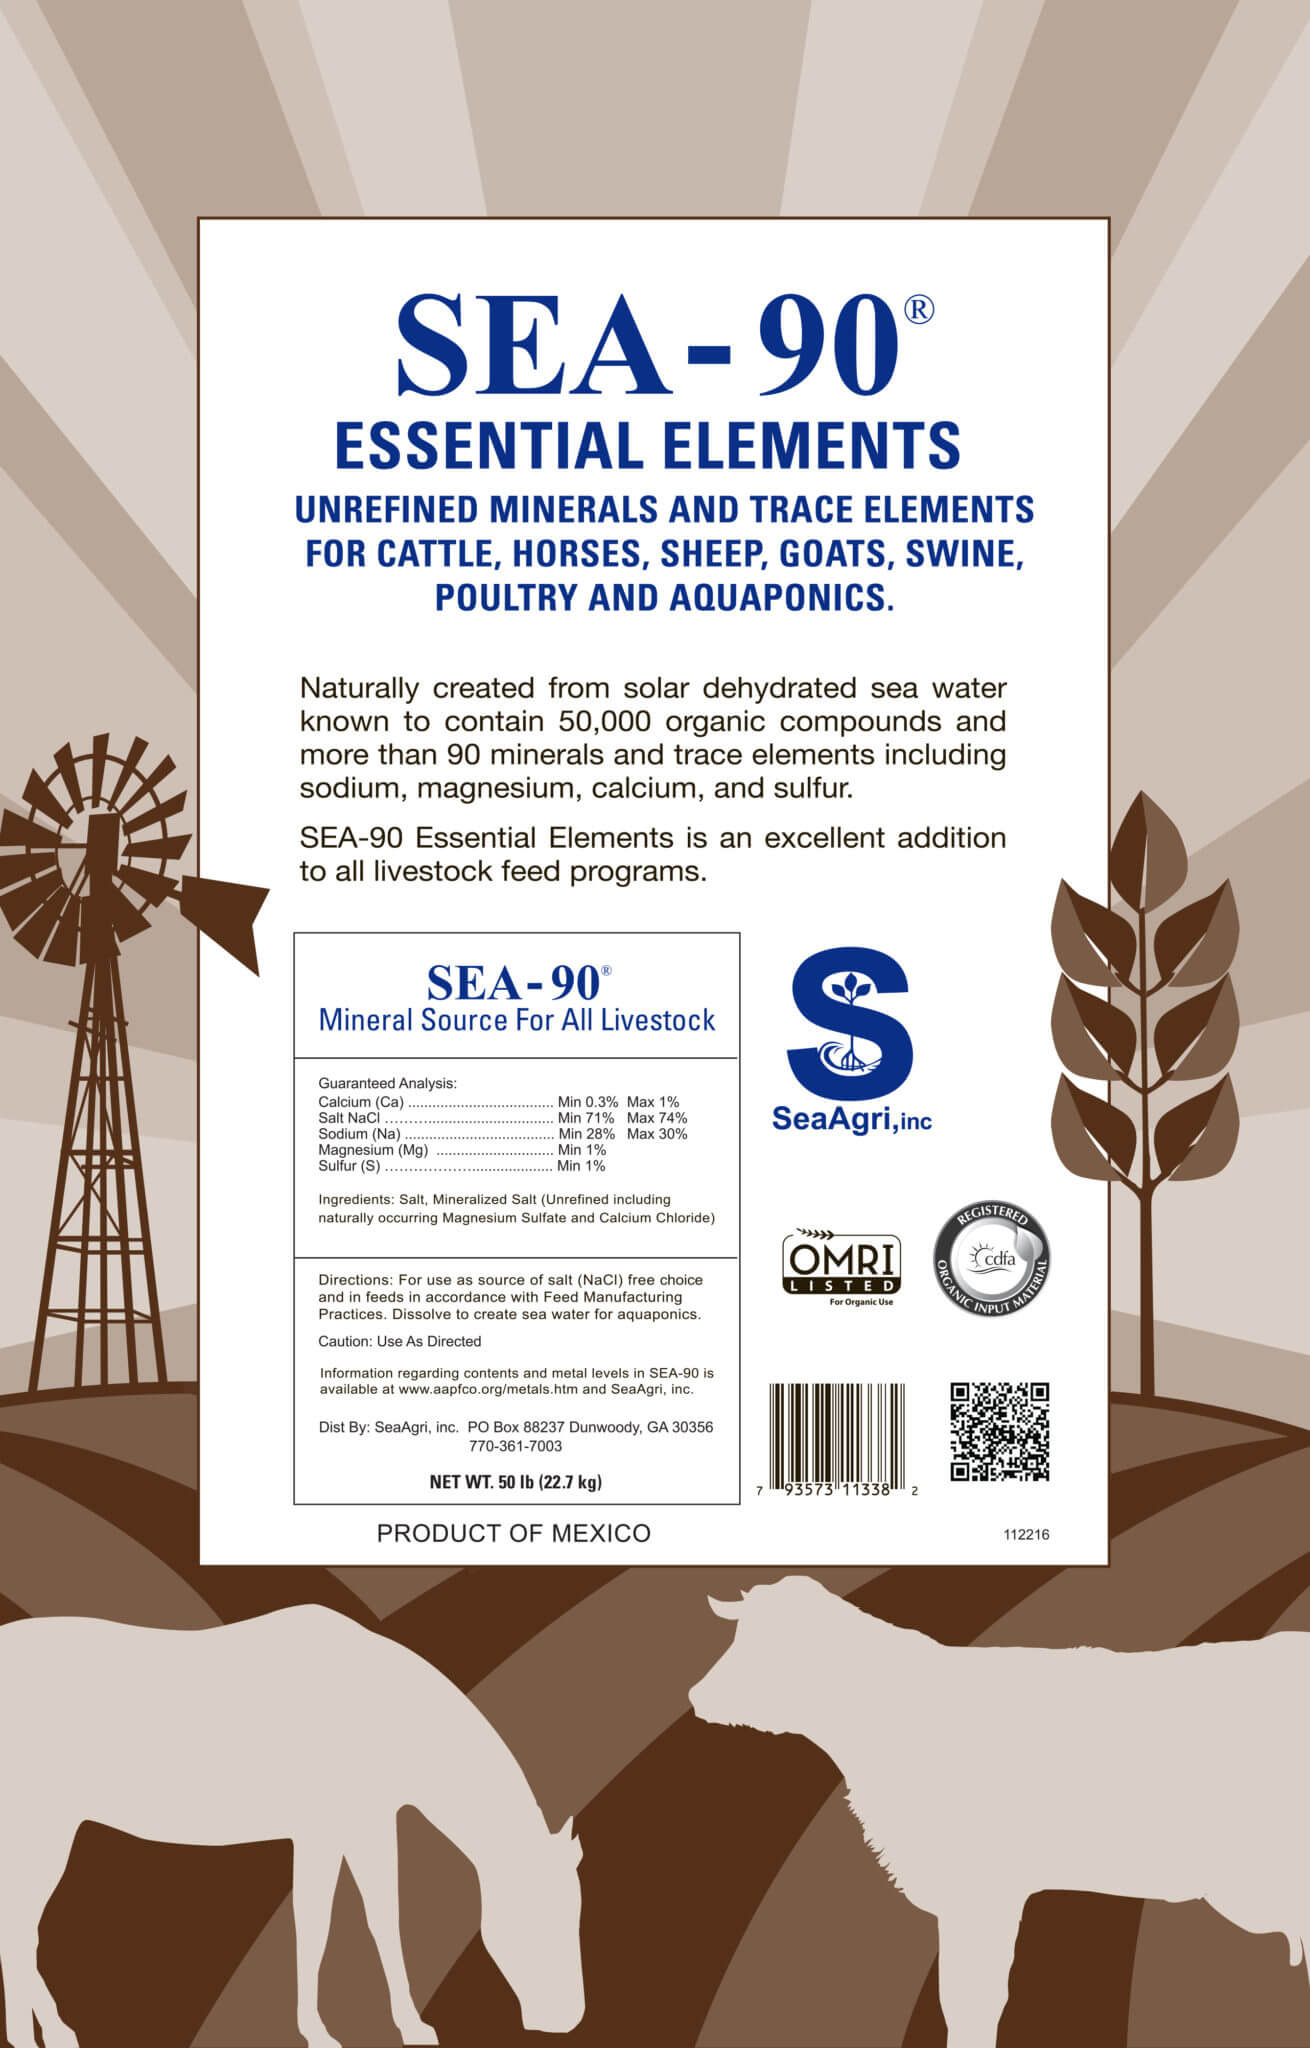 SEA-90 Essential Elements